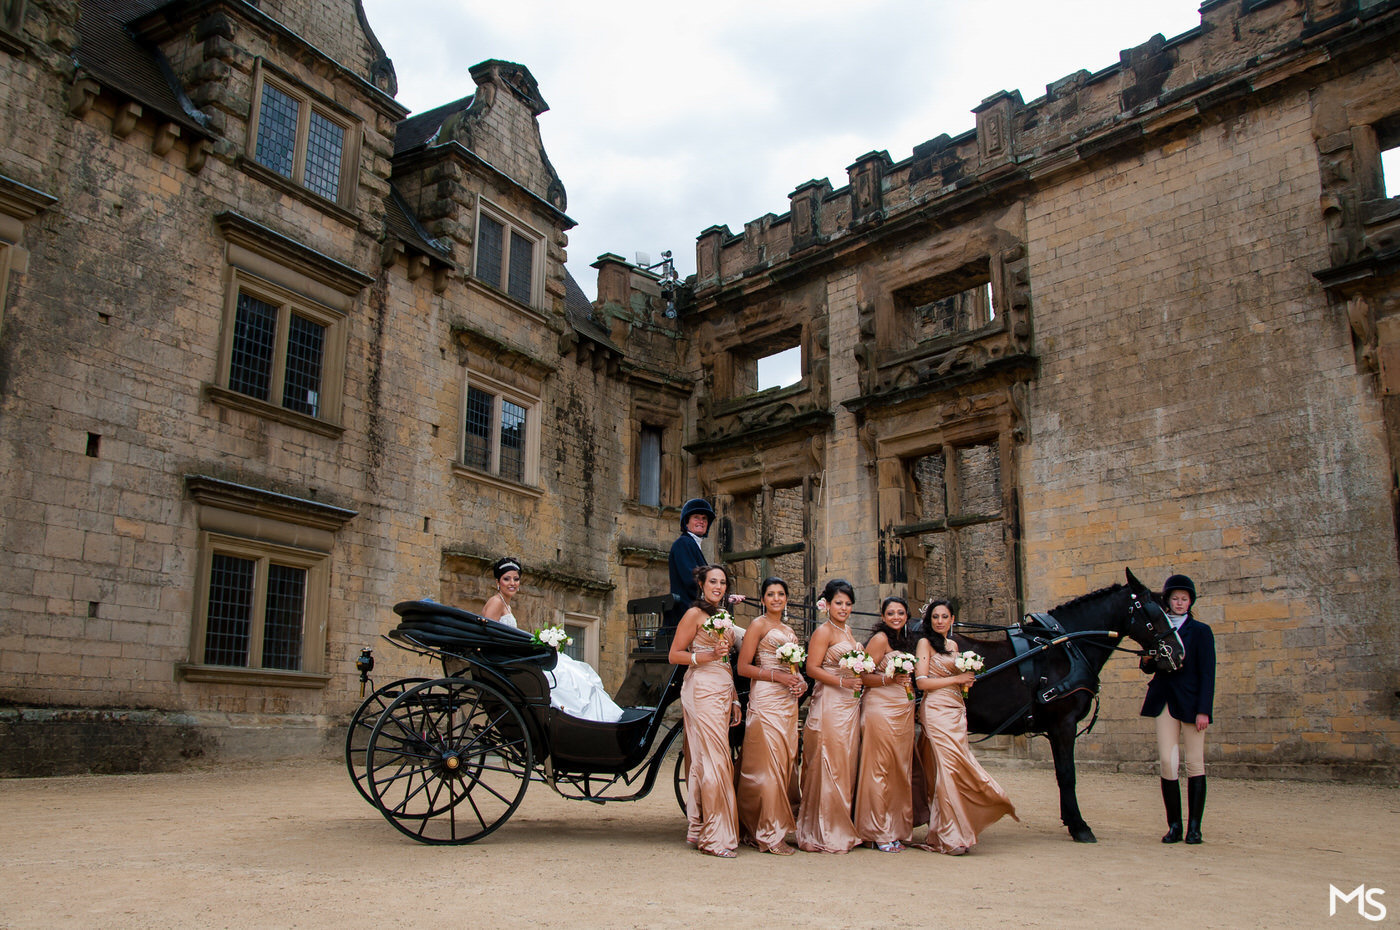 Bolsover-Castle-Indian-wedding - 7_DSC_4527.jpg